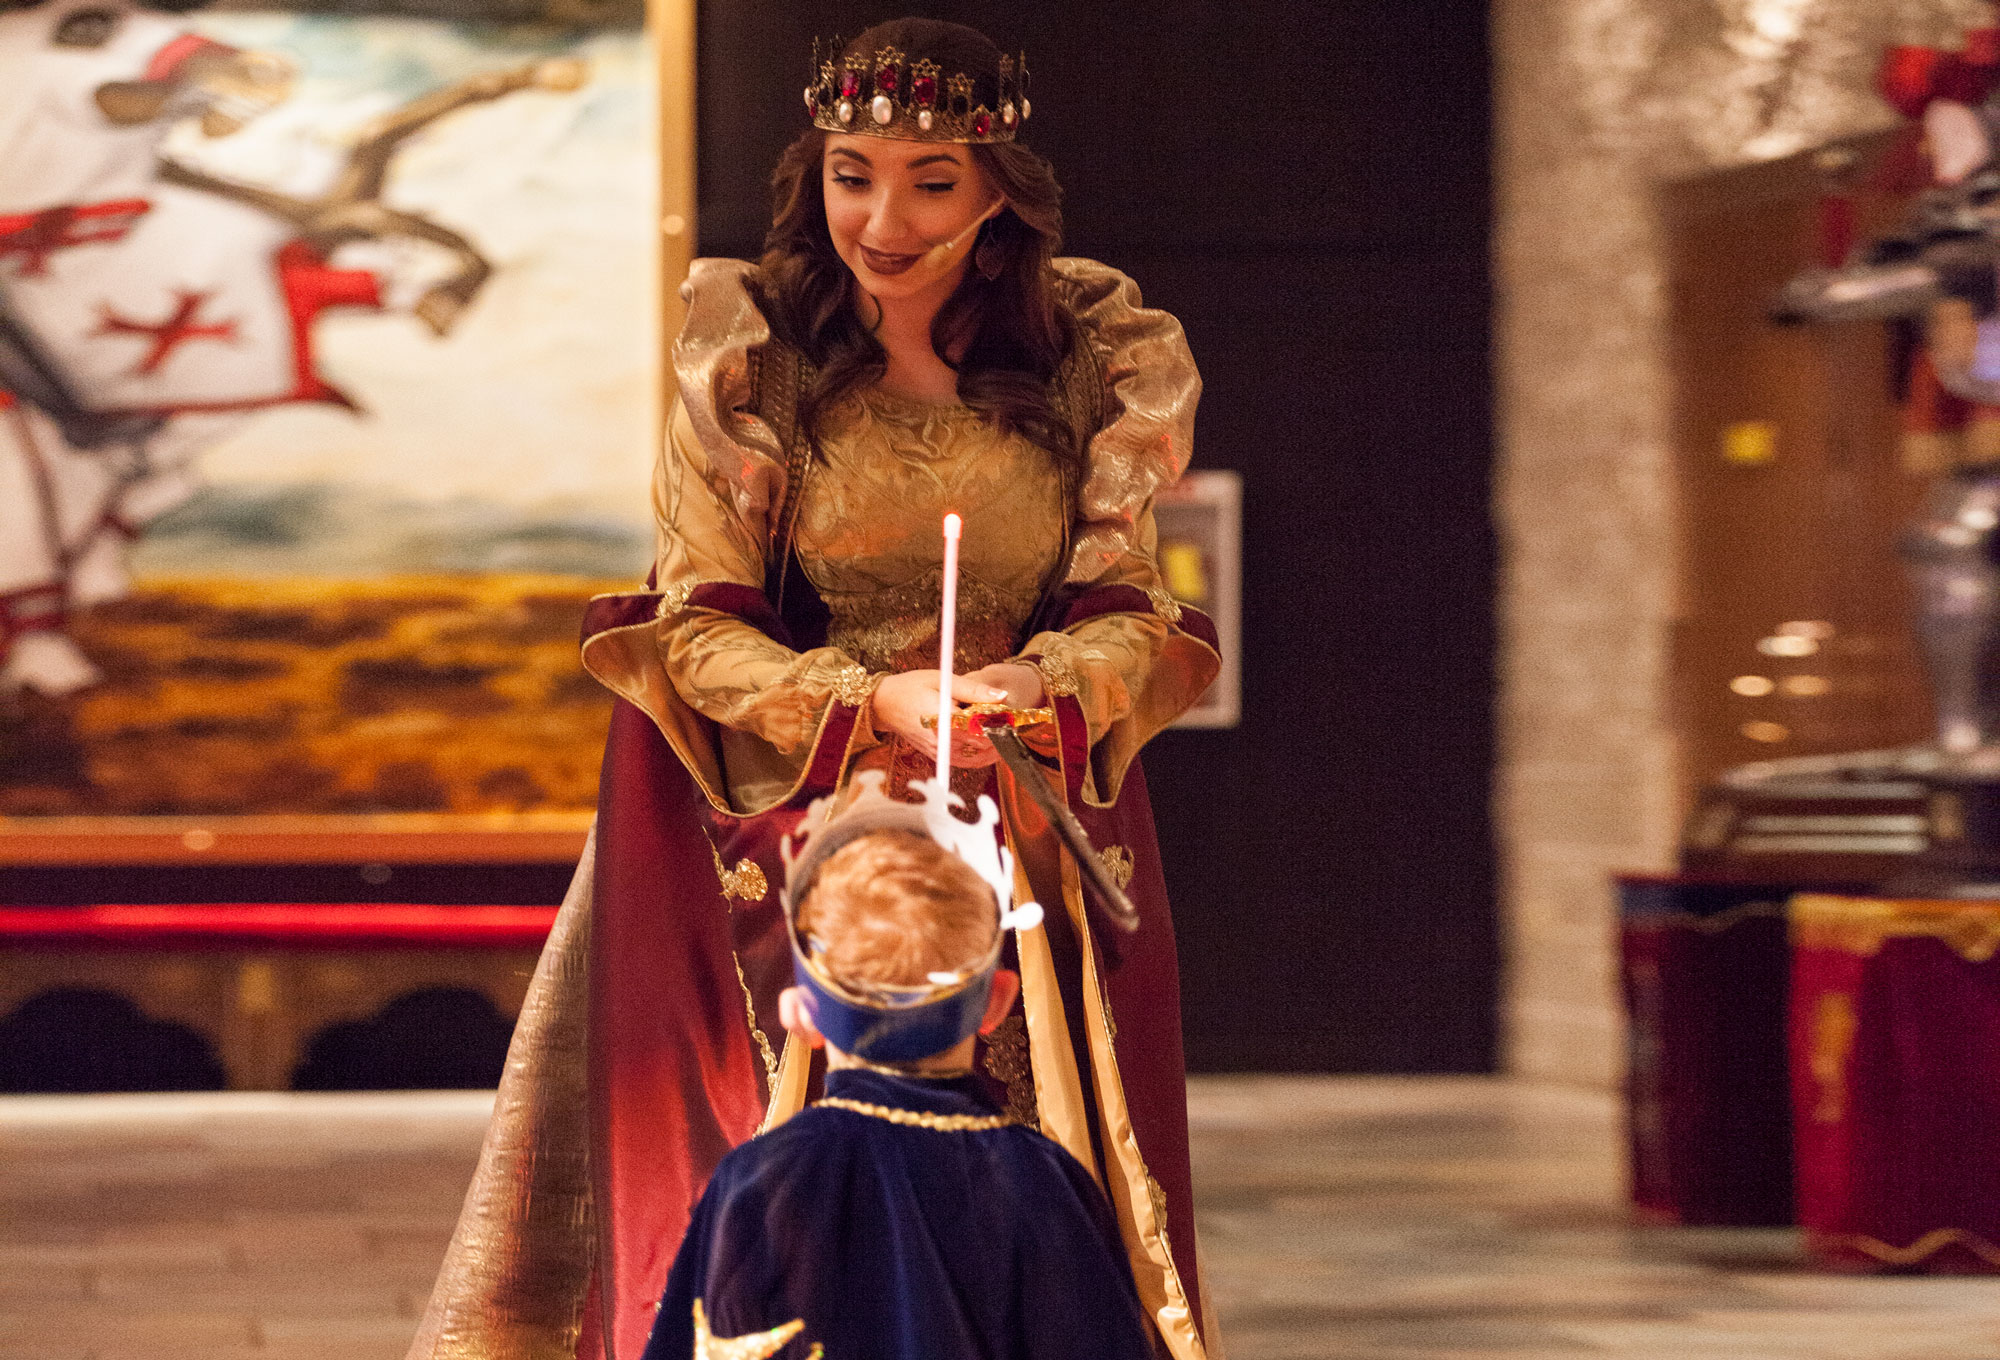 a boy getting knighted by the queen in the Hall of Arms